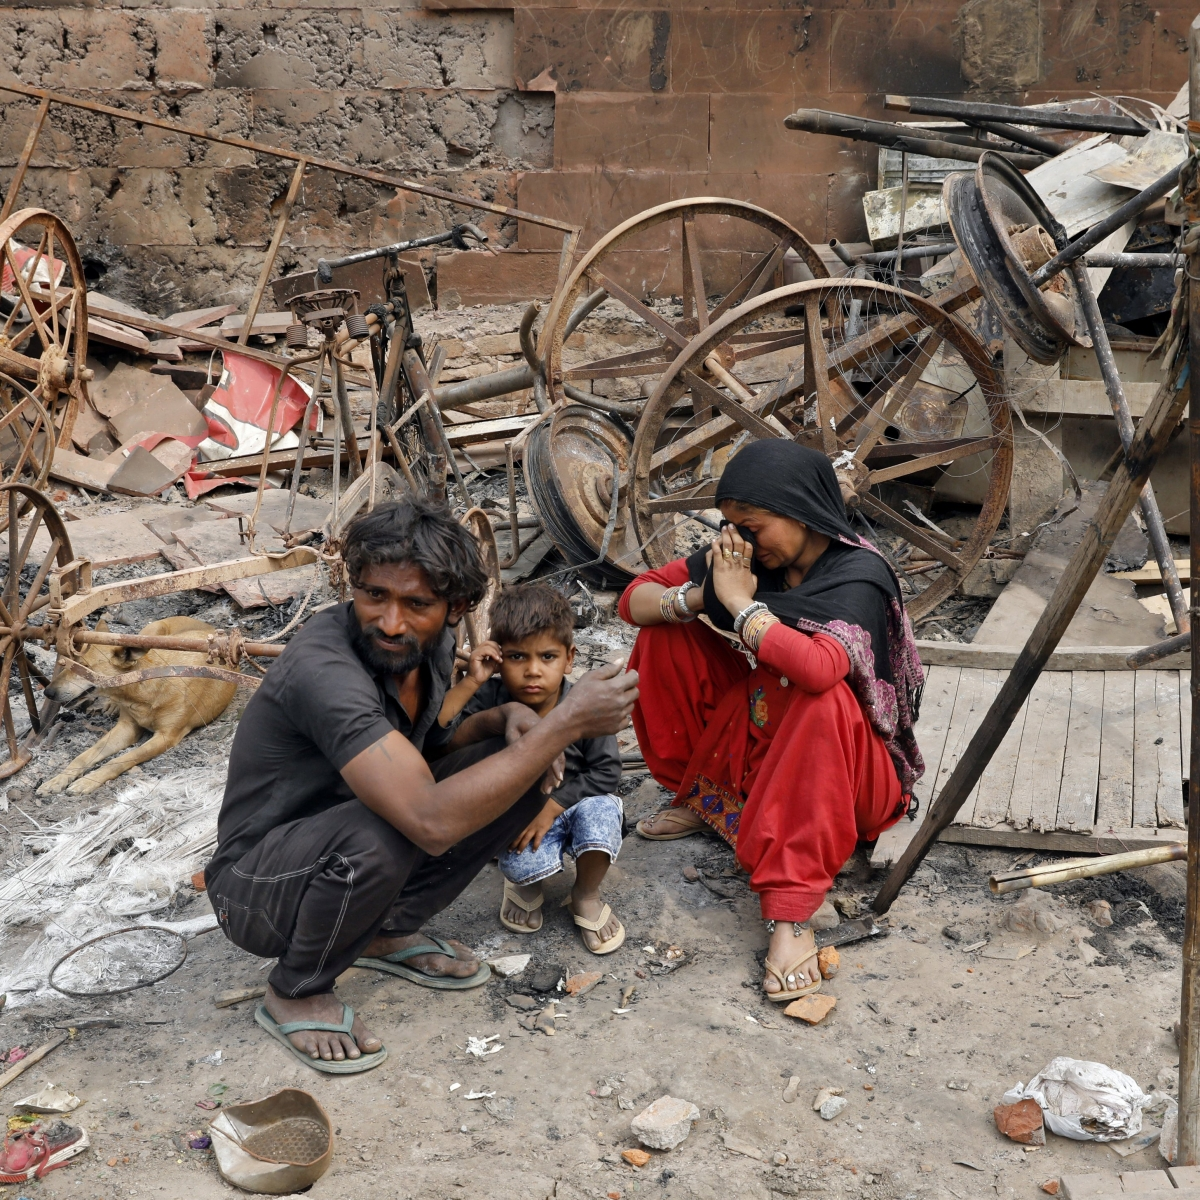 Delhi violence is rooted in heightened sense of insecurity